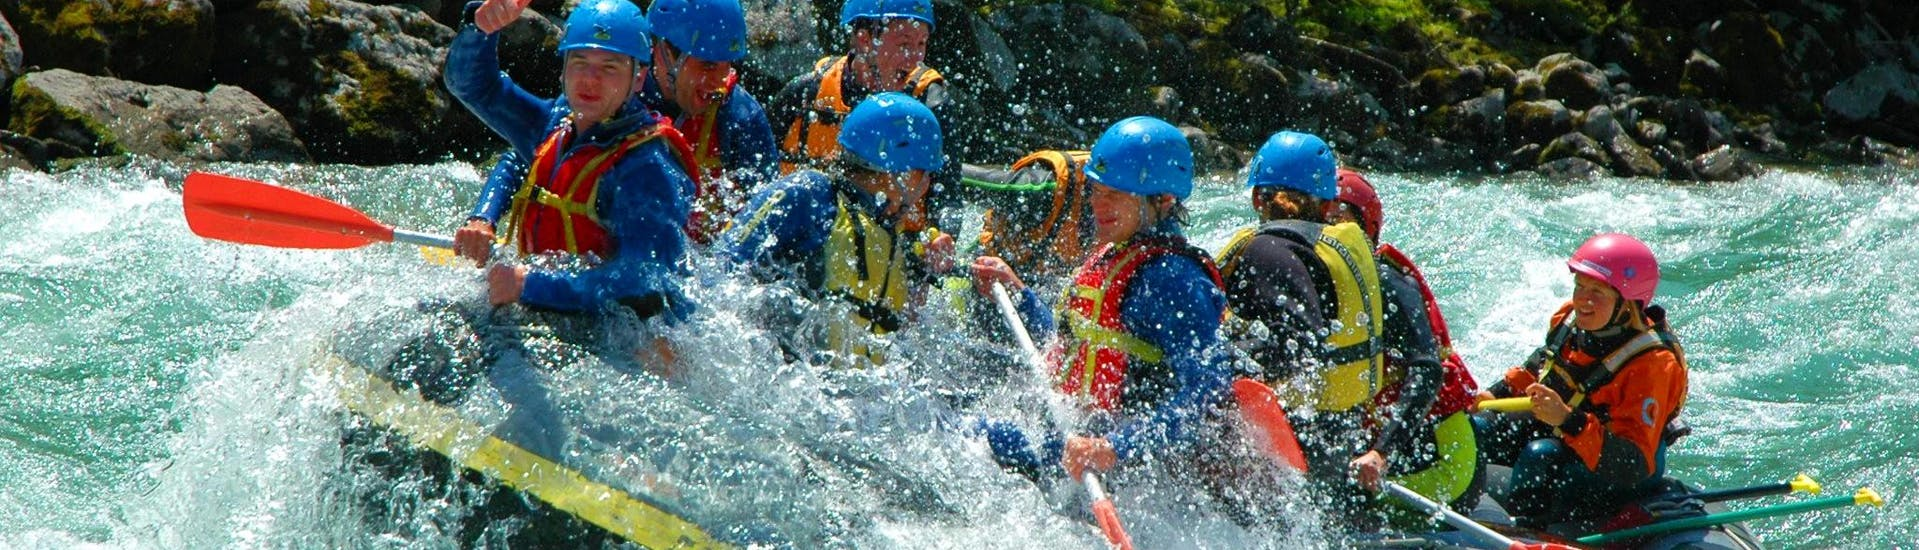 Rafting on the Salzach River